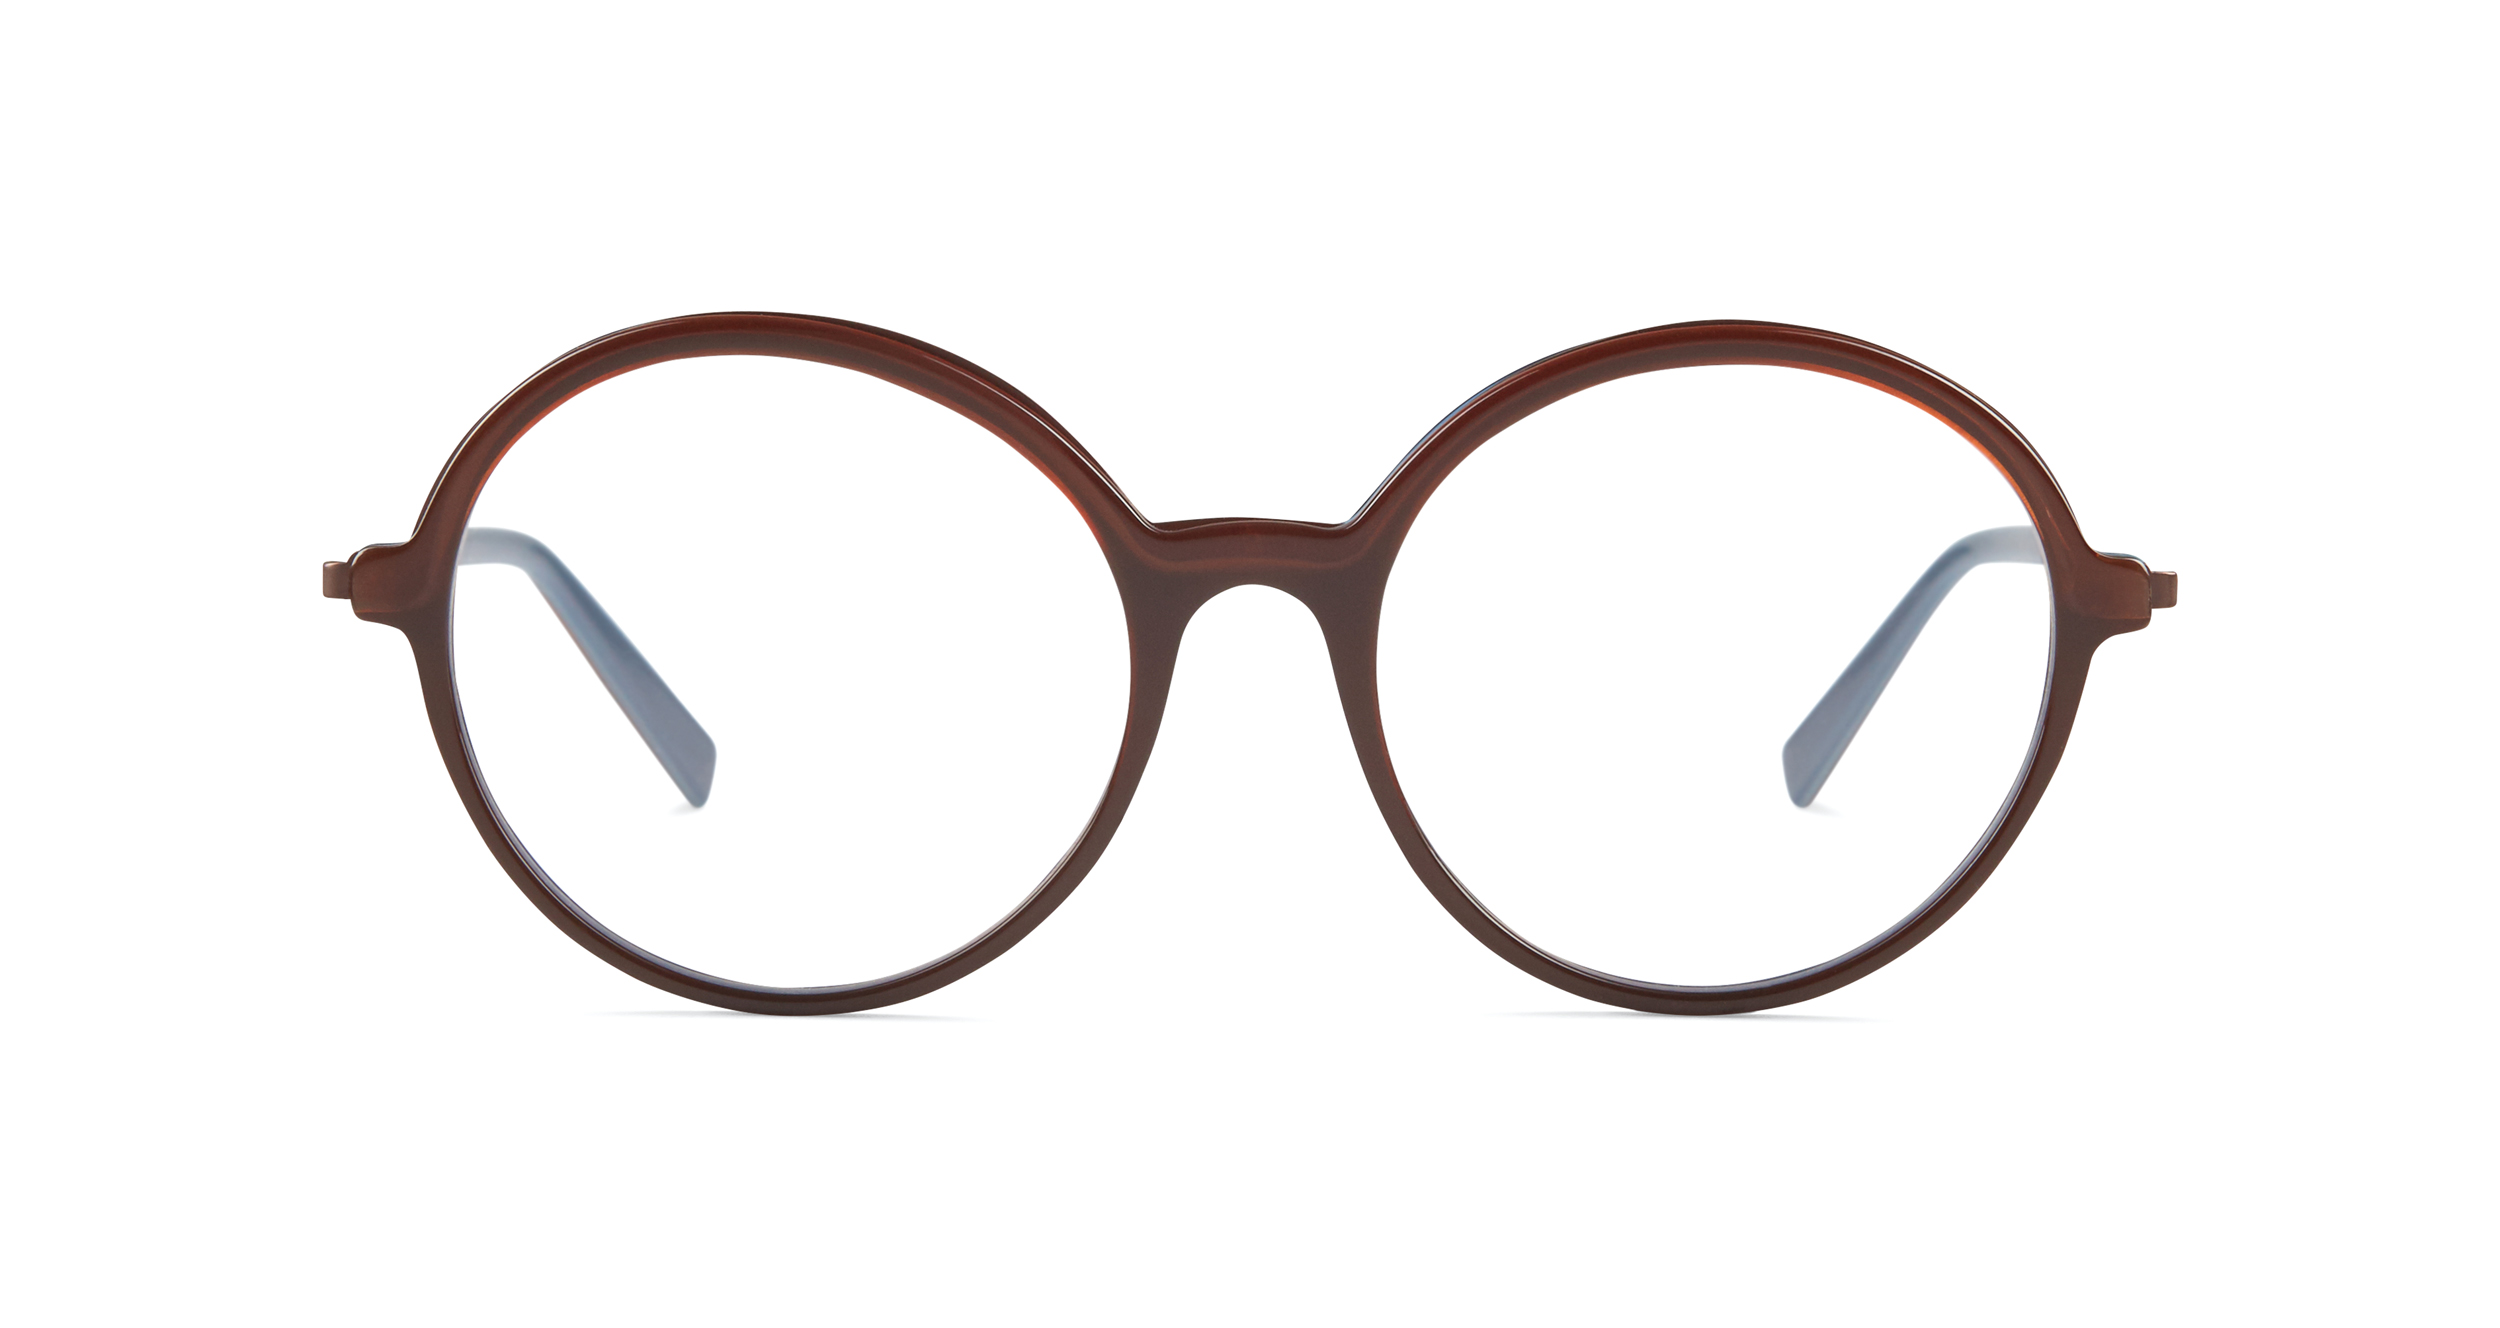 FLEYE | frame: page in burgundy brown, copper